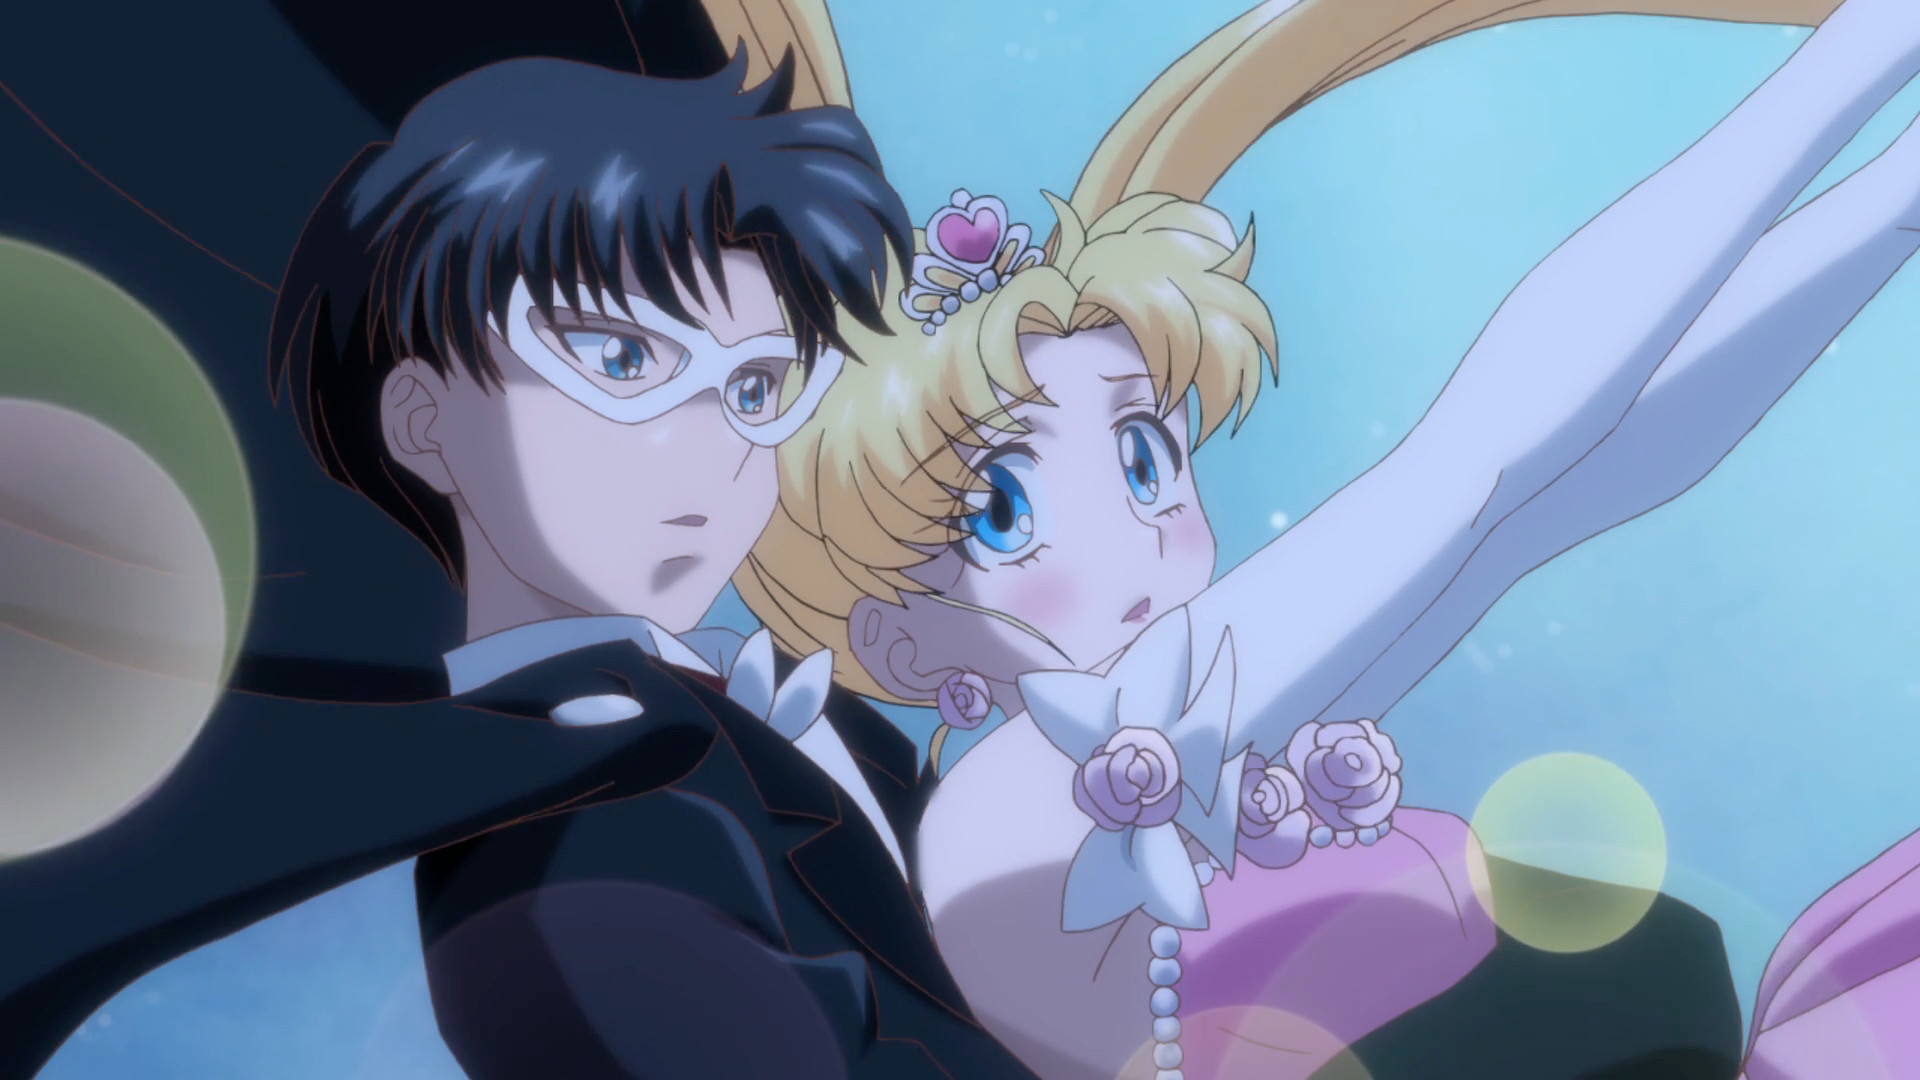 skintattoos  Sailor Moon and Tuxedo Mask Moon and Rose